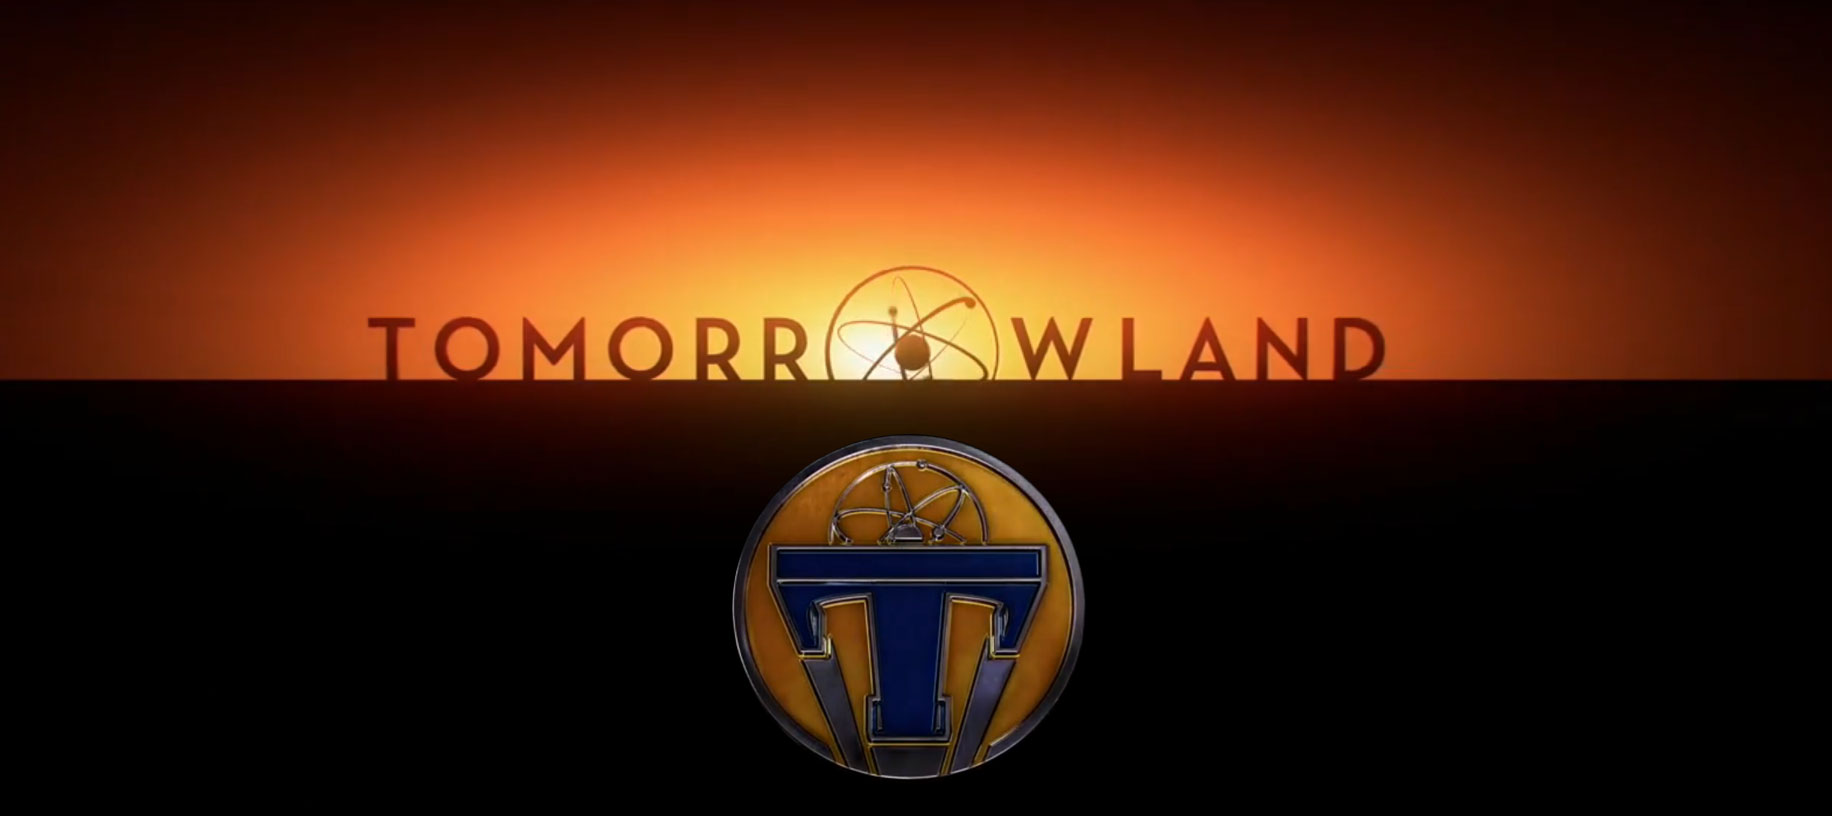 Disney's 'Tomorrowland' Gets a Brand New Trailer